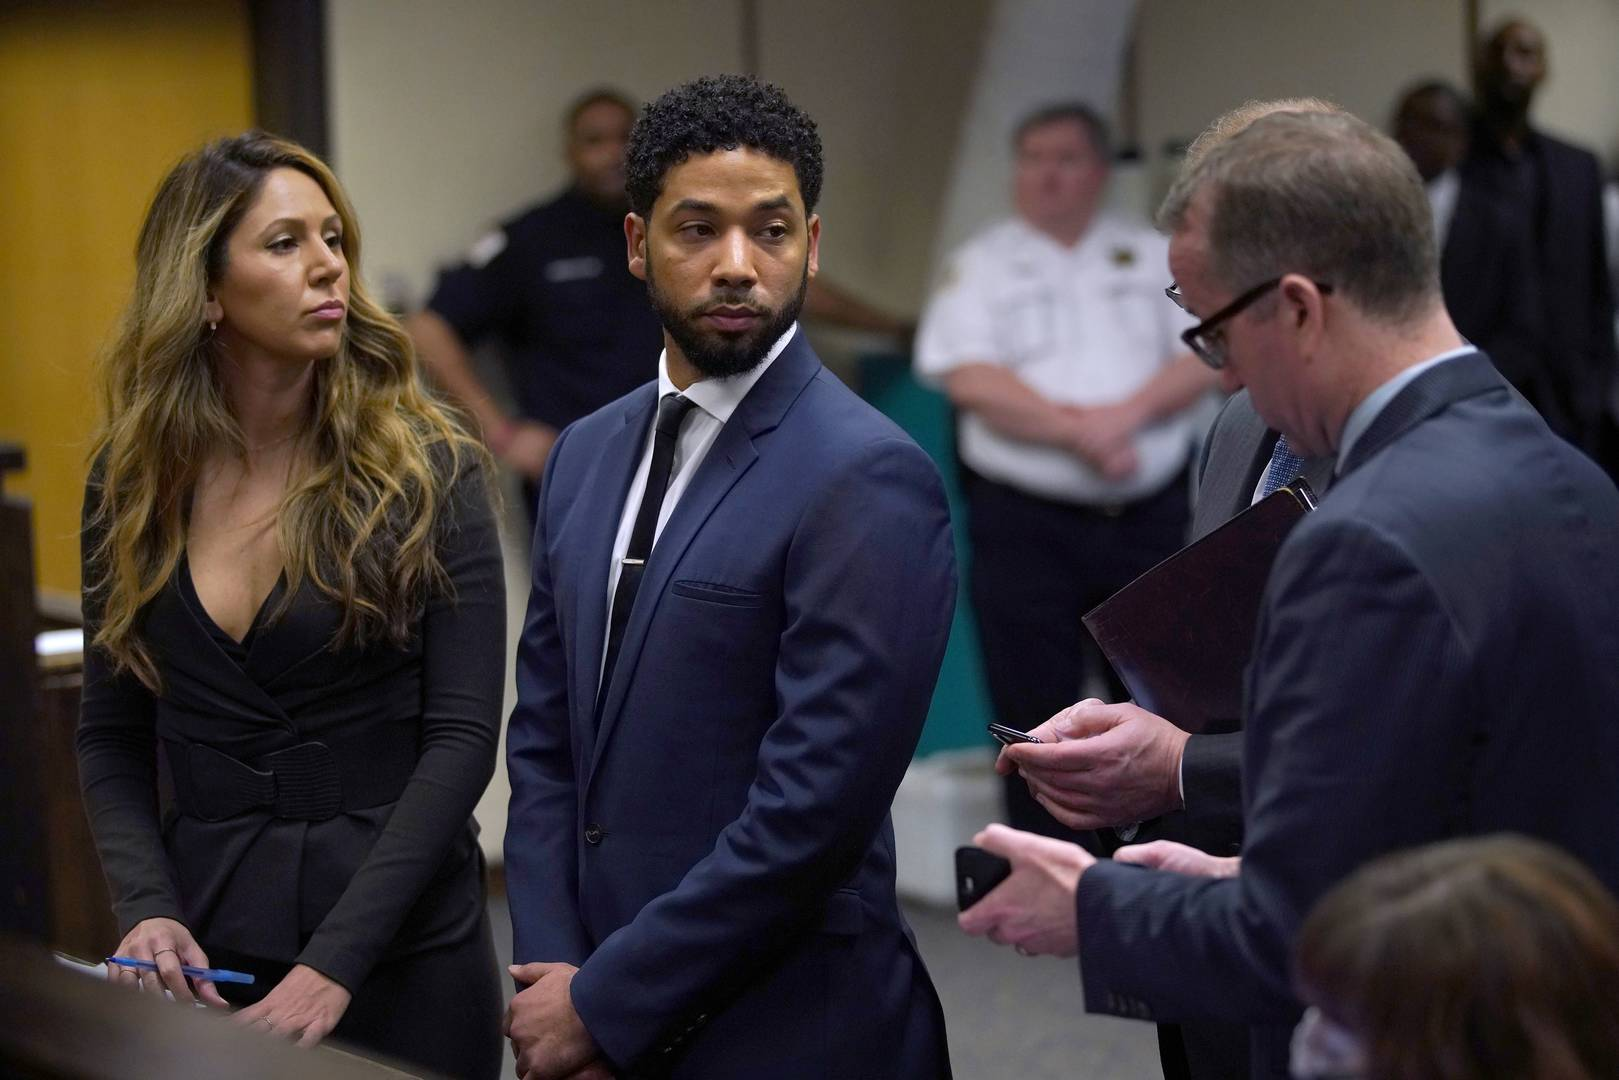 Chicago prosecutor Kim Foxx's texts revealed her frustration over Jussie Smollett's case